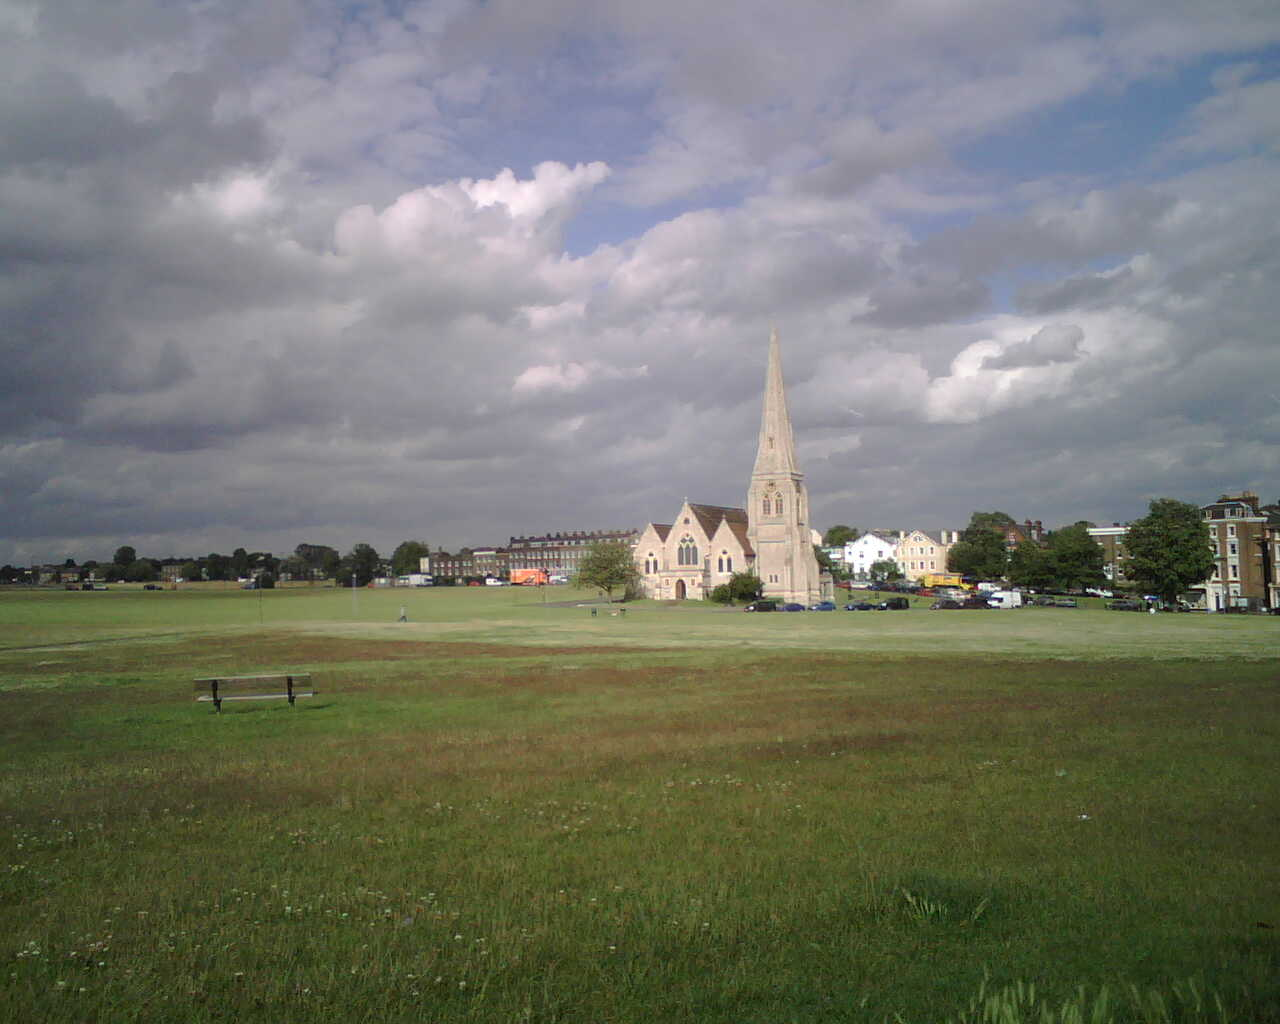 Blackheath Common, London